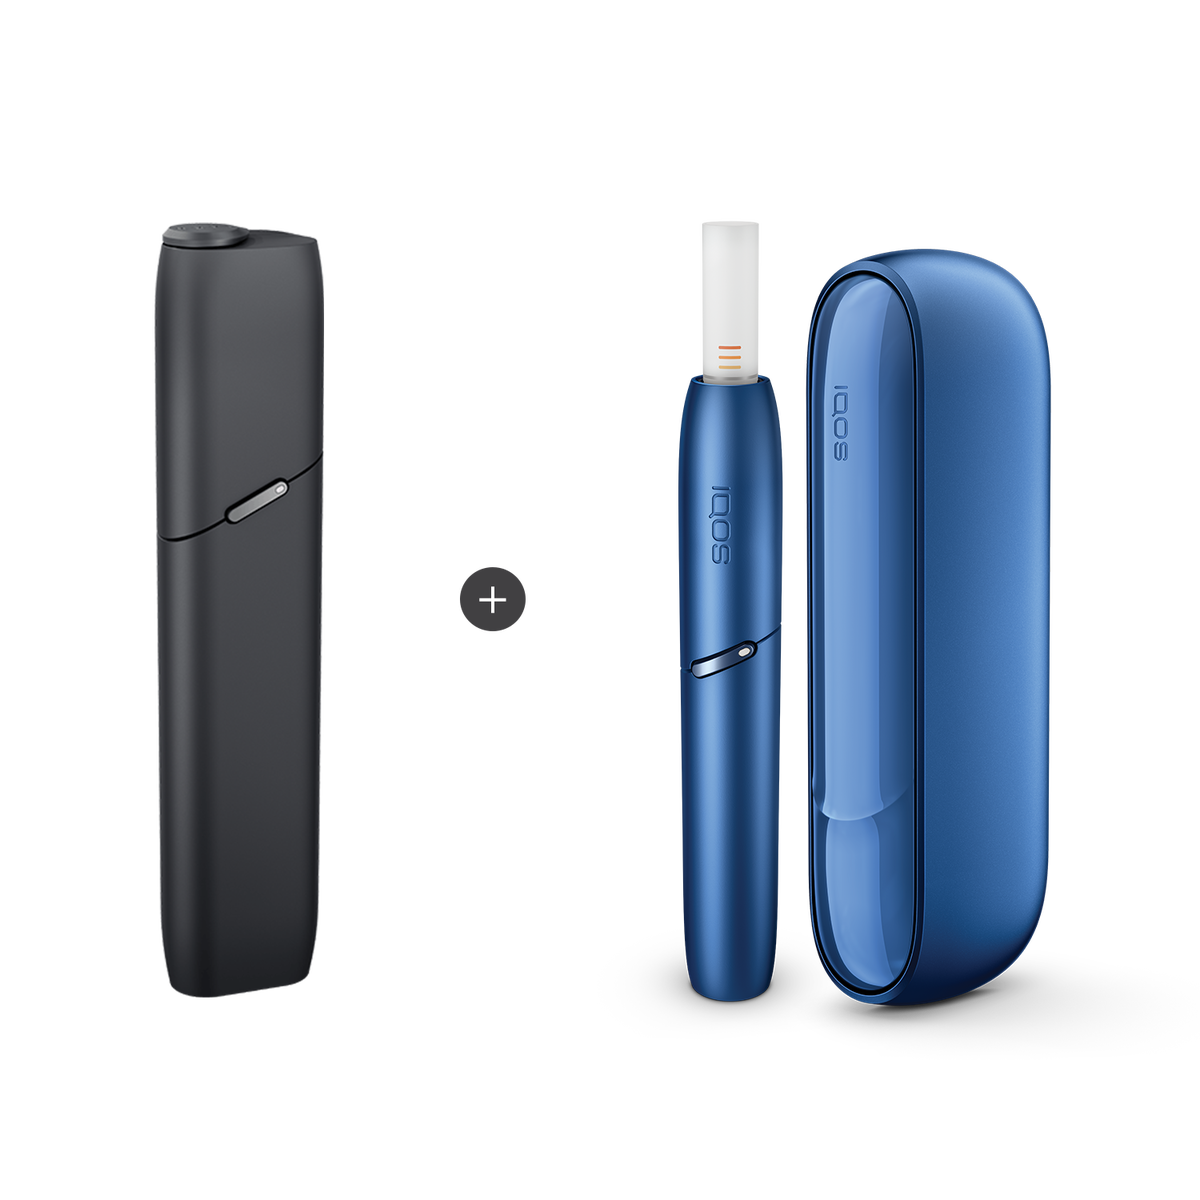 Blue-IQOS3-Multi-Black.png